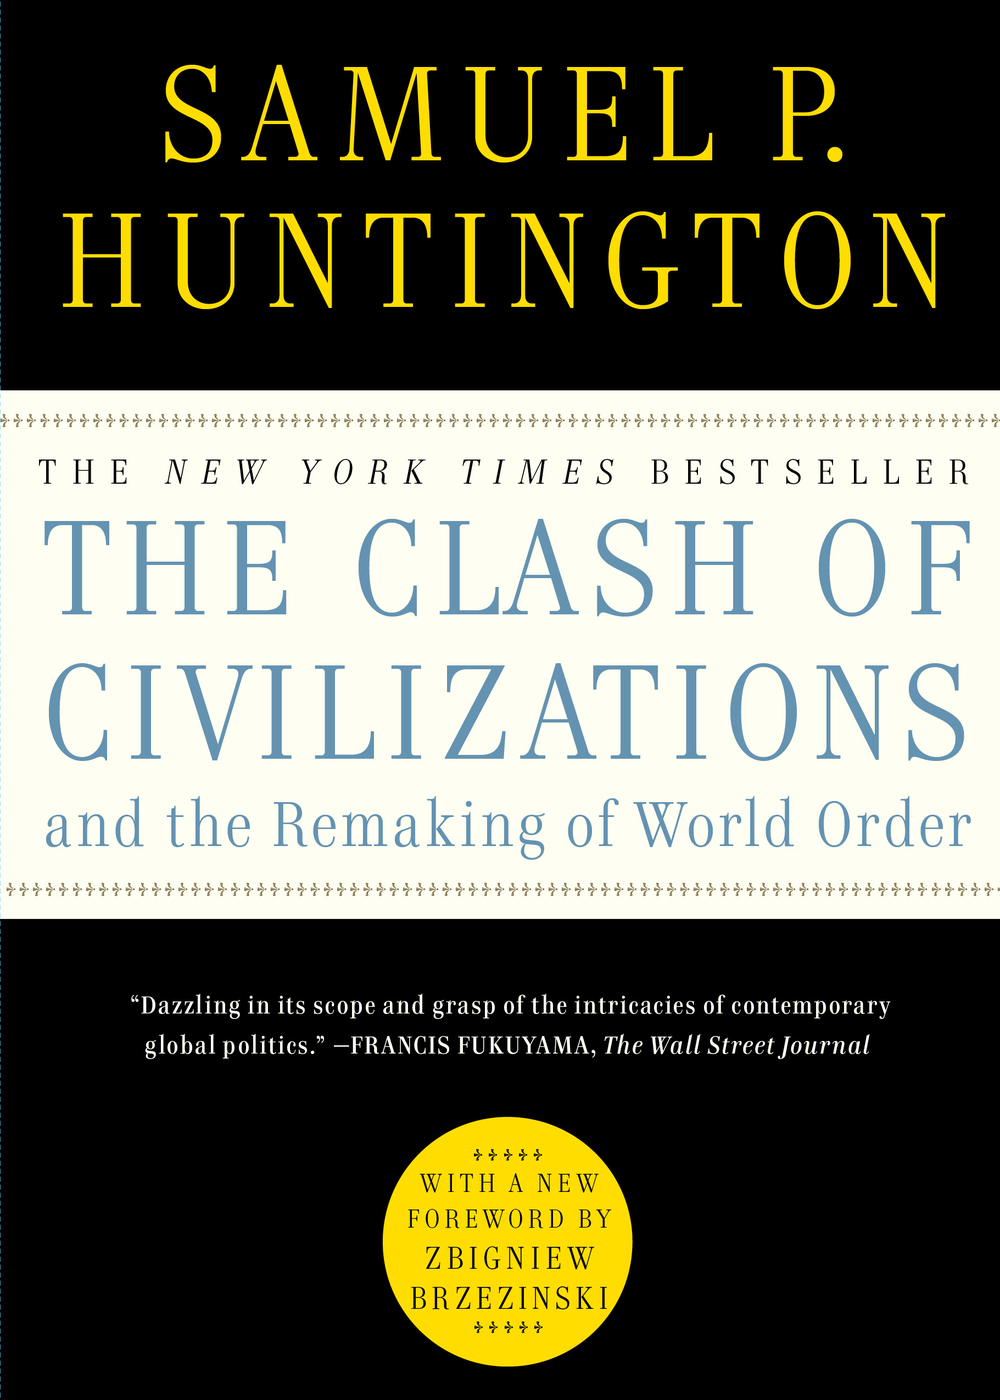 Huntington, Samuel - The Clash of Civilizations and the Remaking of World Order.jpg